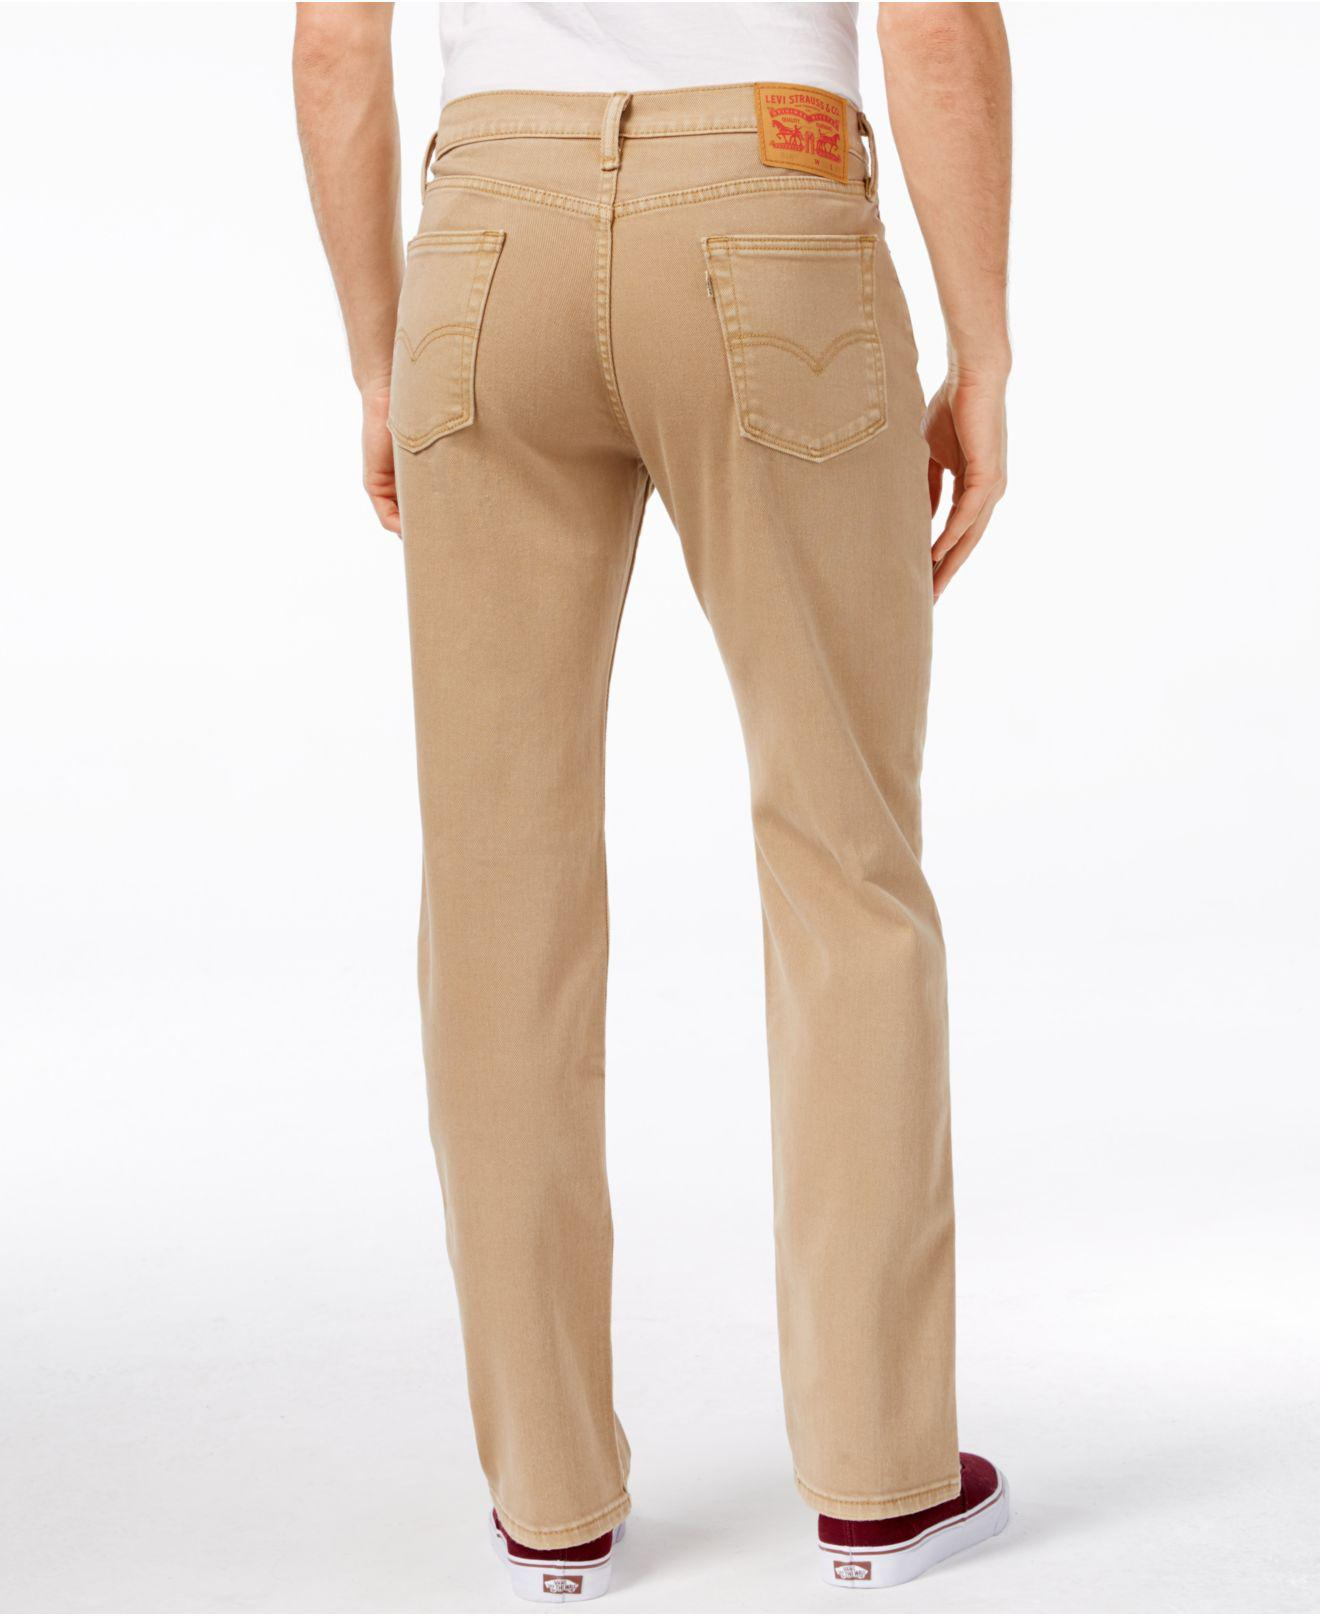 313b0cfc Levi's - Natural Men's 514 Straight-leg Corduroy Pants for Men - Lyst. View  fullscreen